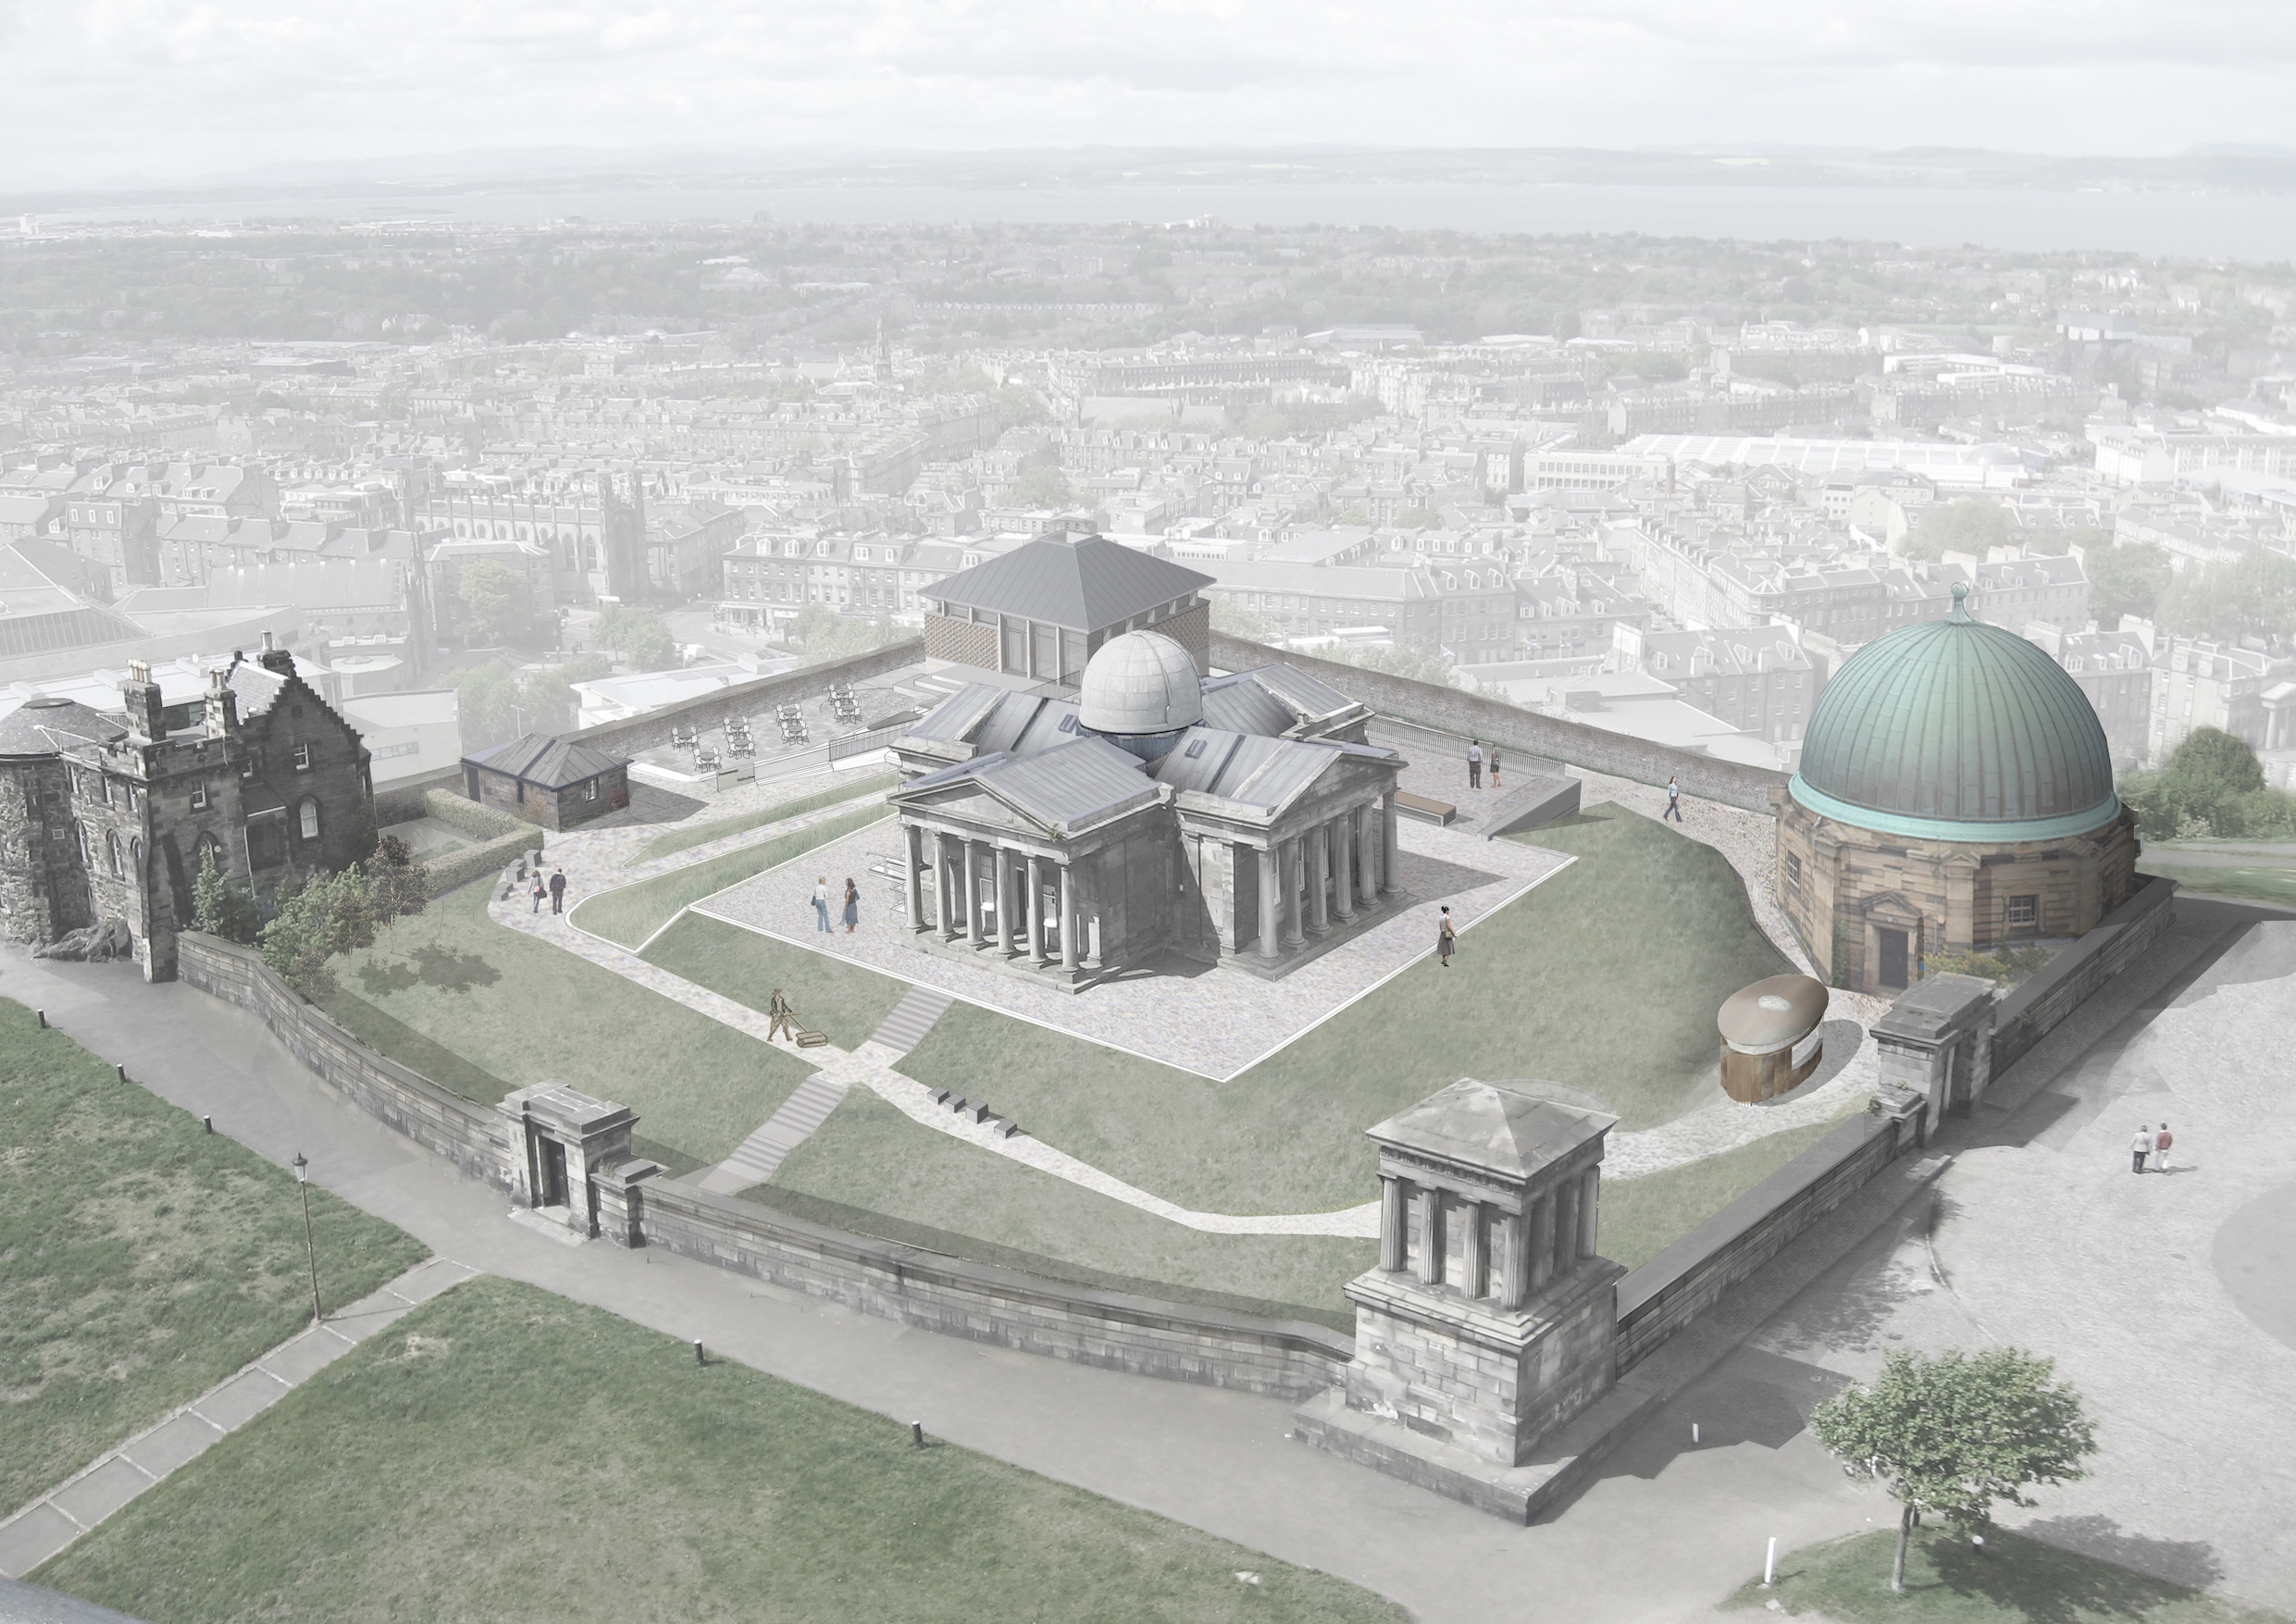 Architect's impression of the completed site on Calton Hill, courtesy of Collective Architecture